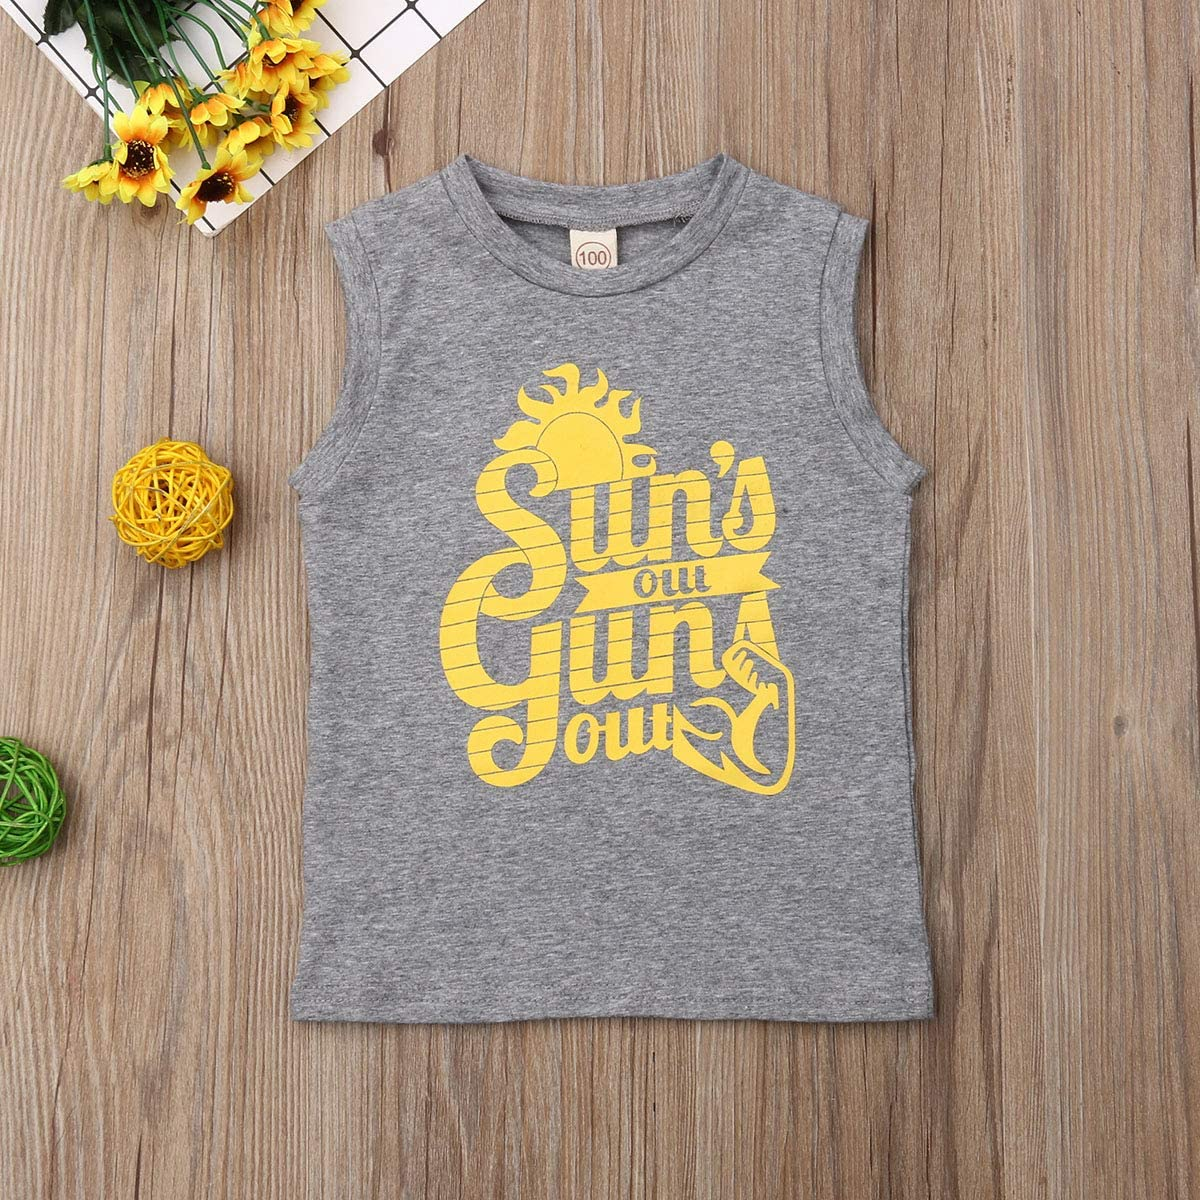 goowrom Toddler Baby Boy Letters Printed Sleeveless Vest Top Undershirt Tees Tank T-Shirts Outfits Summer Clothes